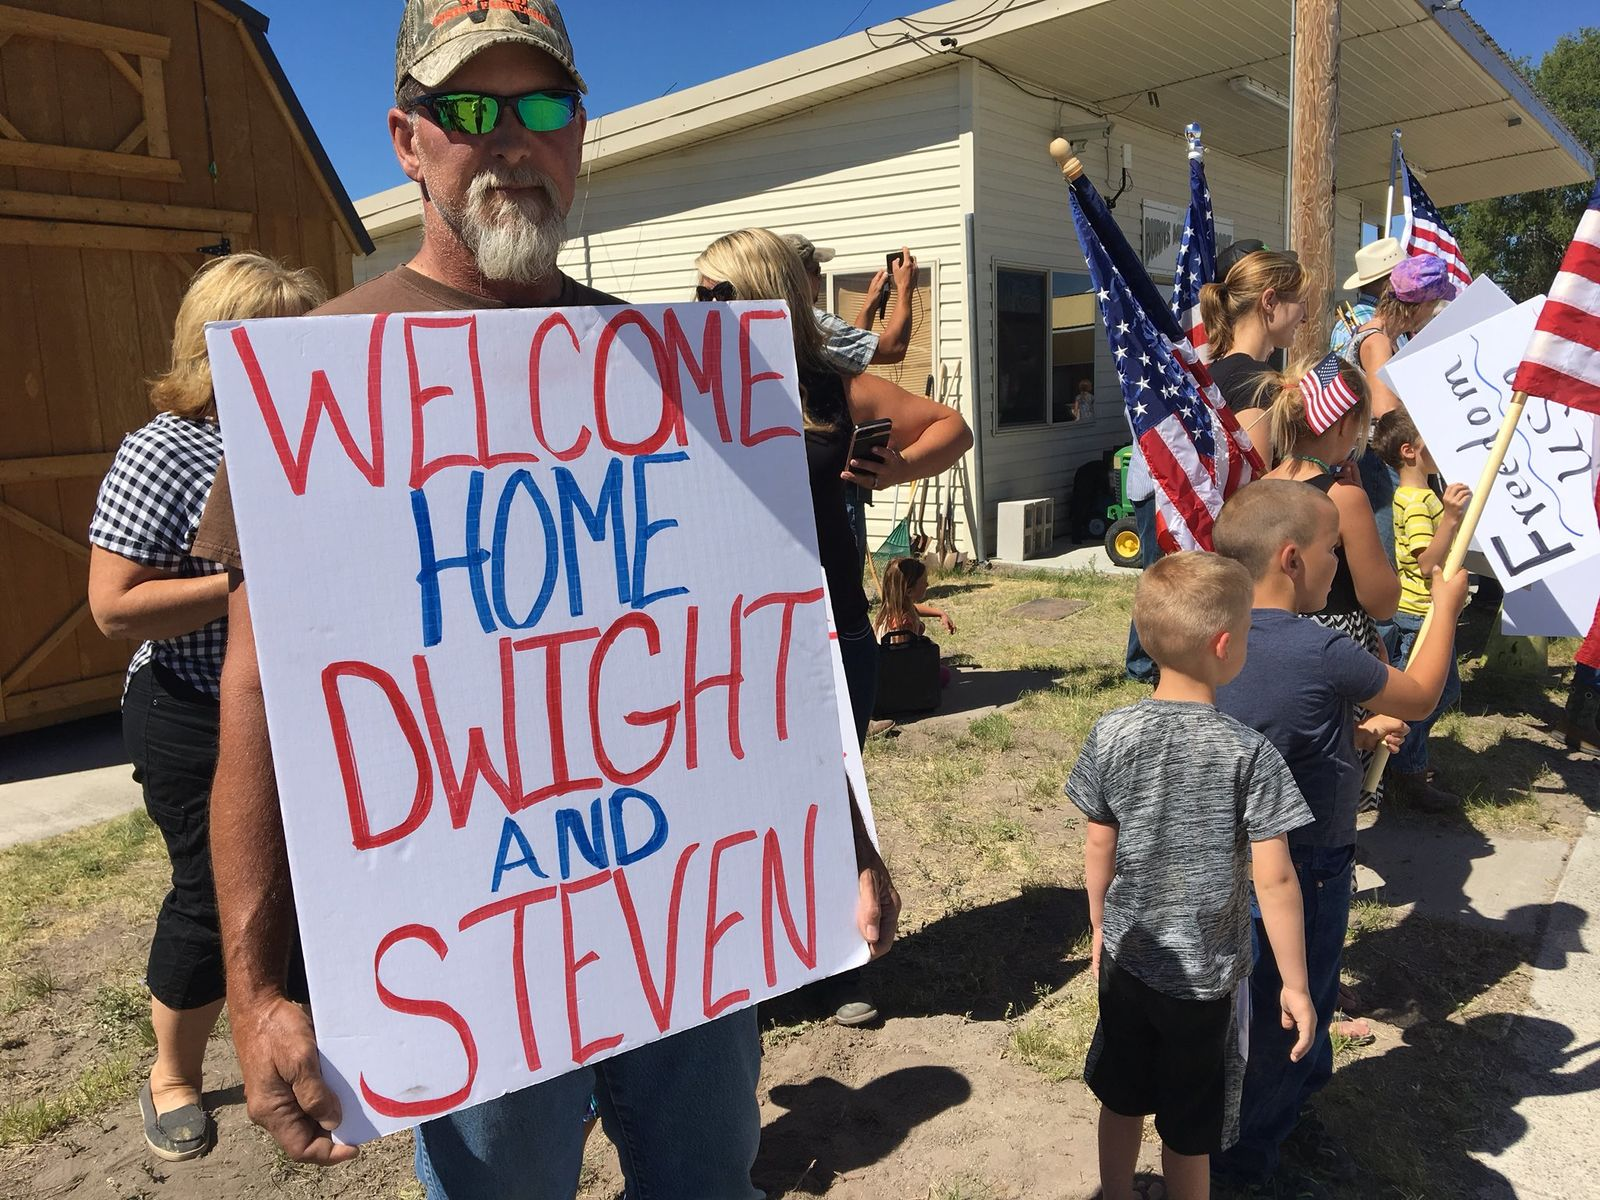 An eager crowd waited for Dwight and Steven Hammond to arrive home at a small airport in Burns, Oregon on July 11, 2018. President Donald Trump pardoned the arson sentences of the father and son ranchers on July 10, 2018. The two were accused of setting a fire on Bureau of Land Management property to hide evidence of game violation and were sentenced to five years in prison. KATU photo